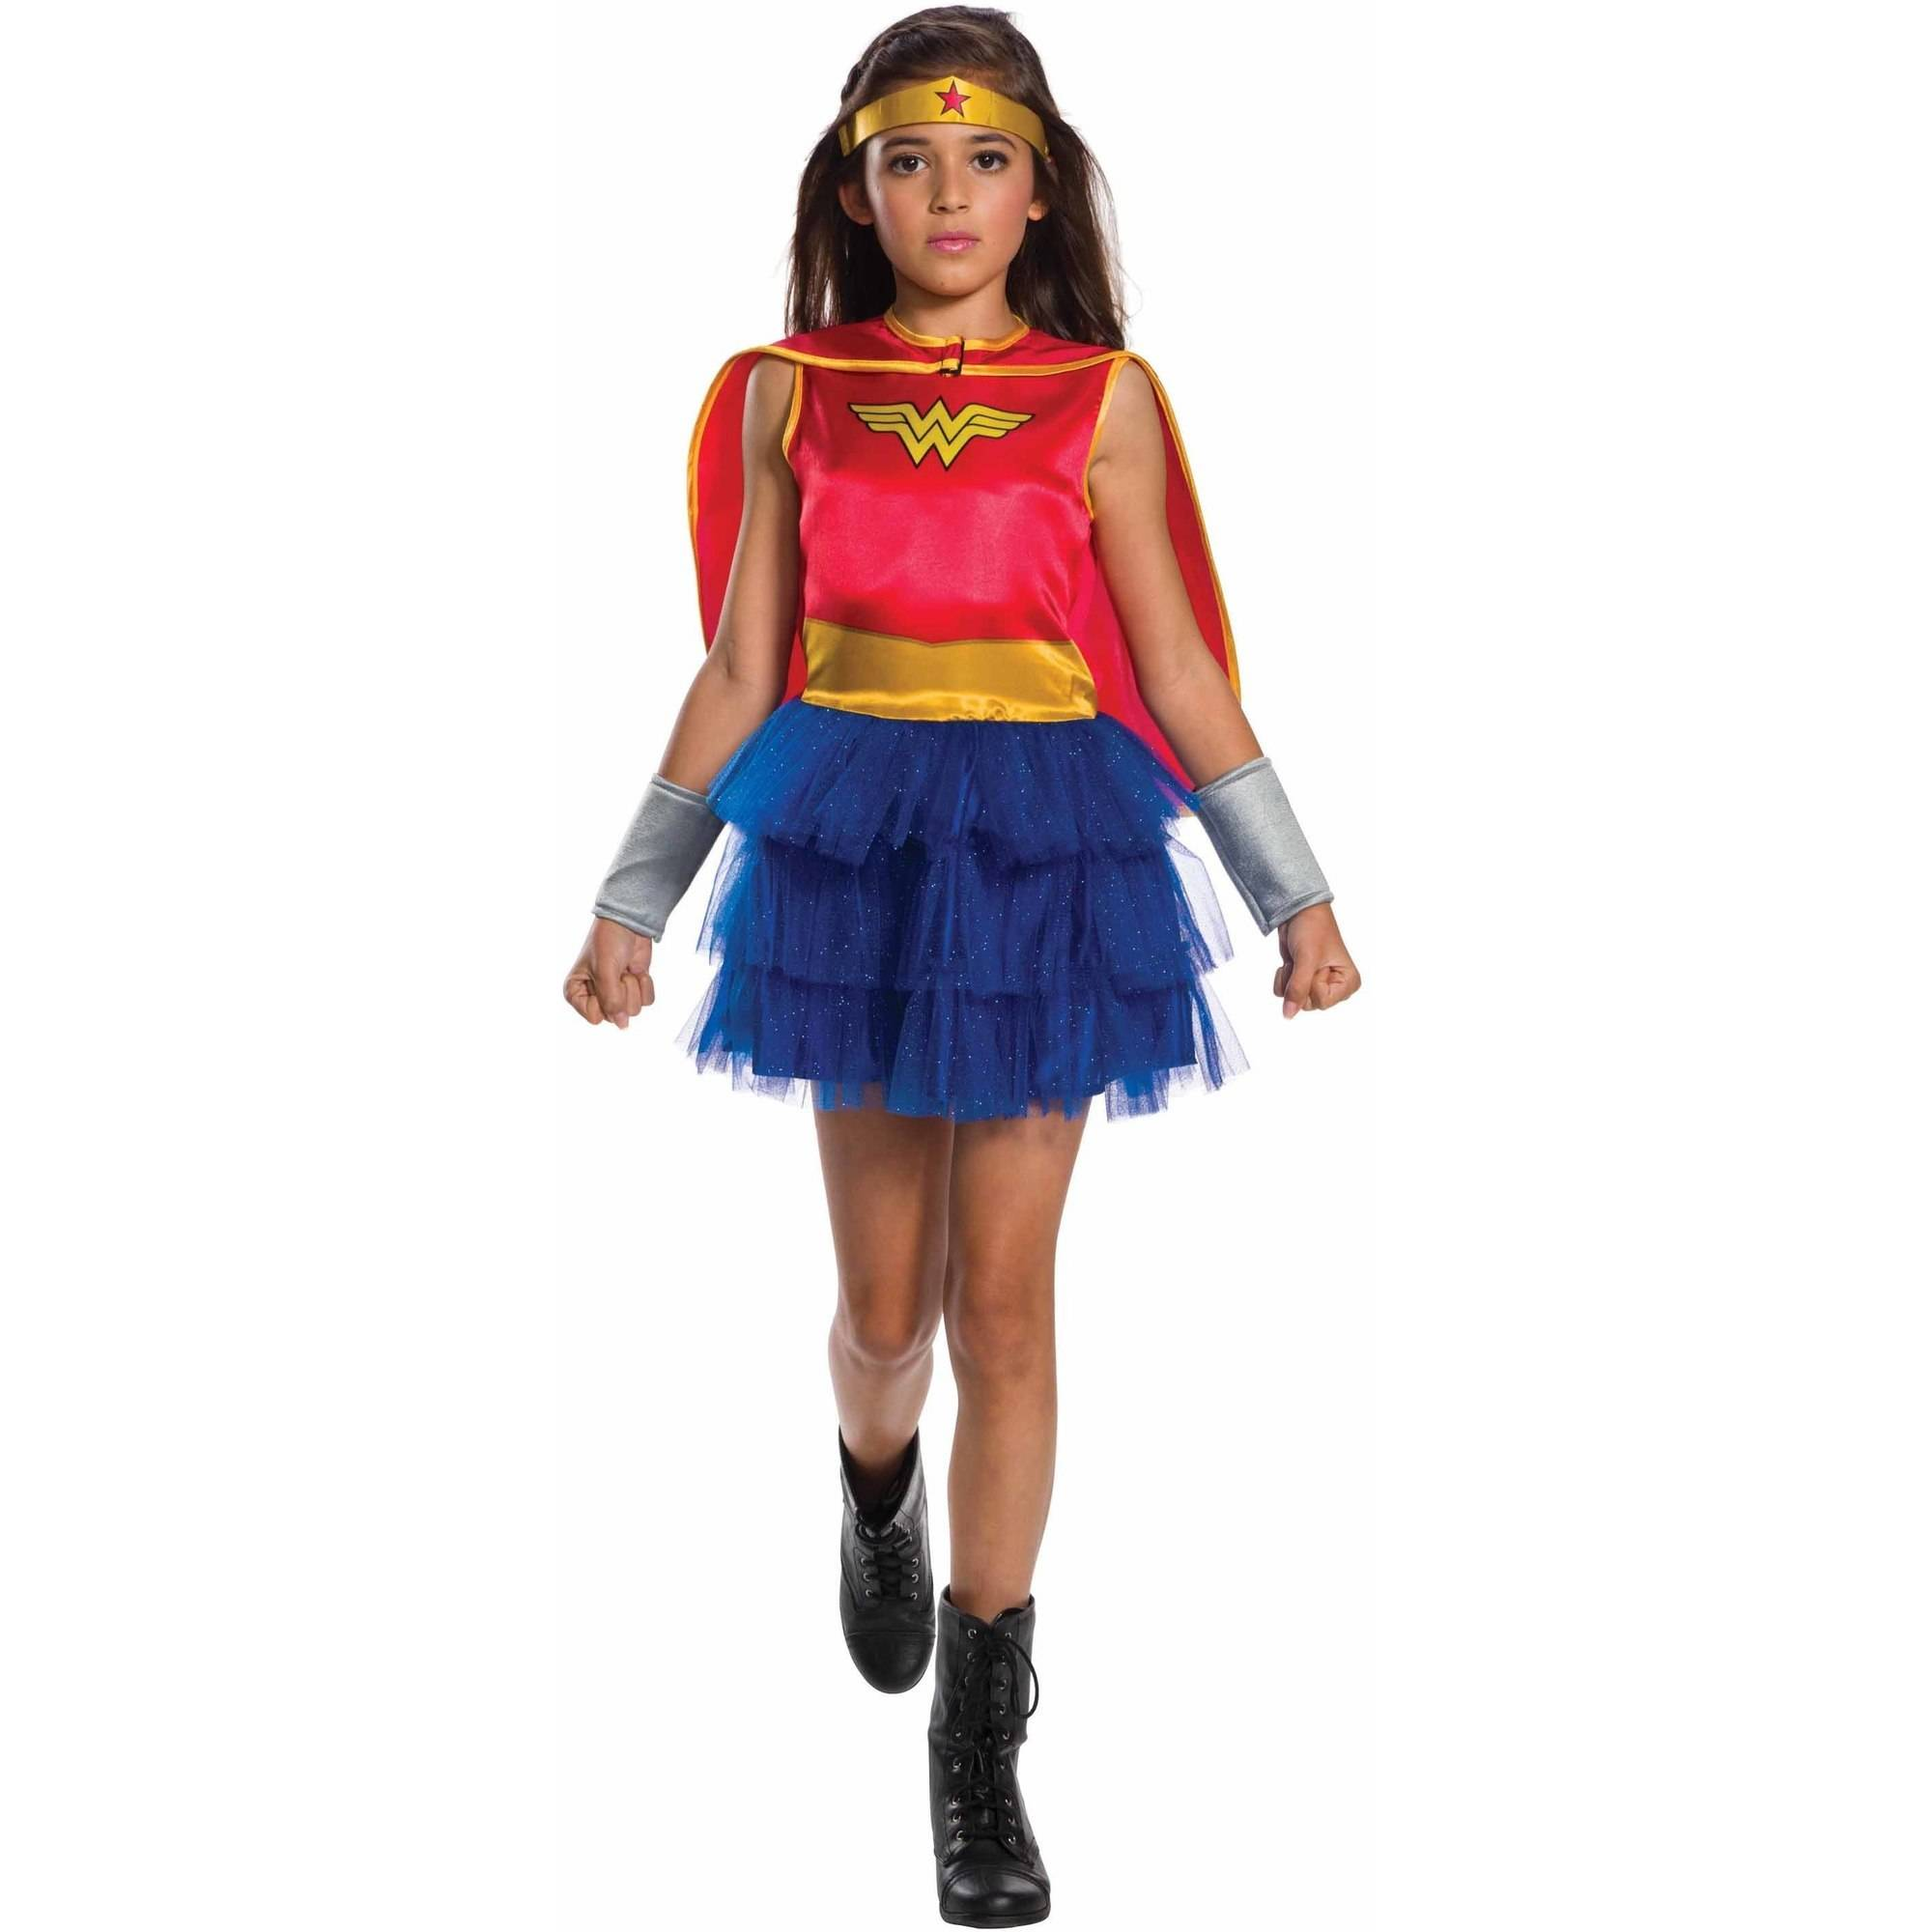 CHILDREN IN NEED Superhero Skirts Costume  Woman Spider bat Style ADULTS